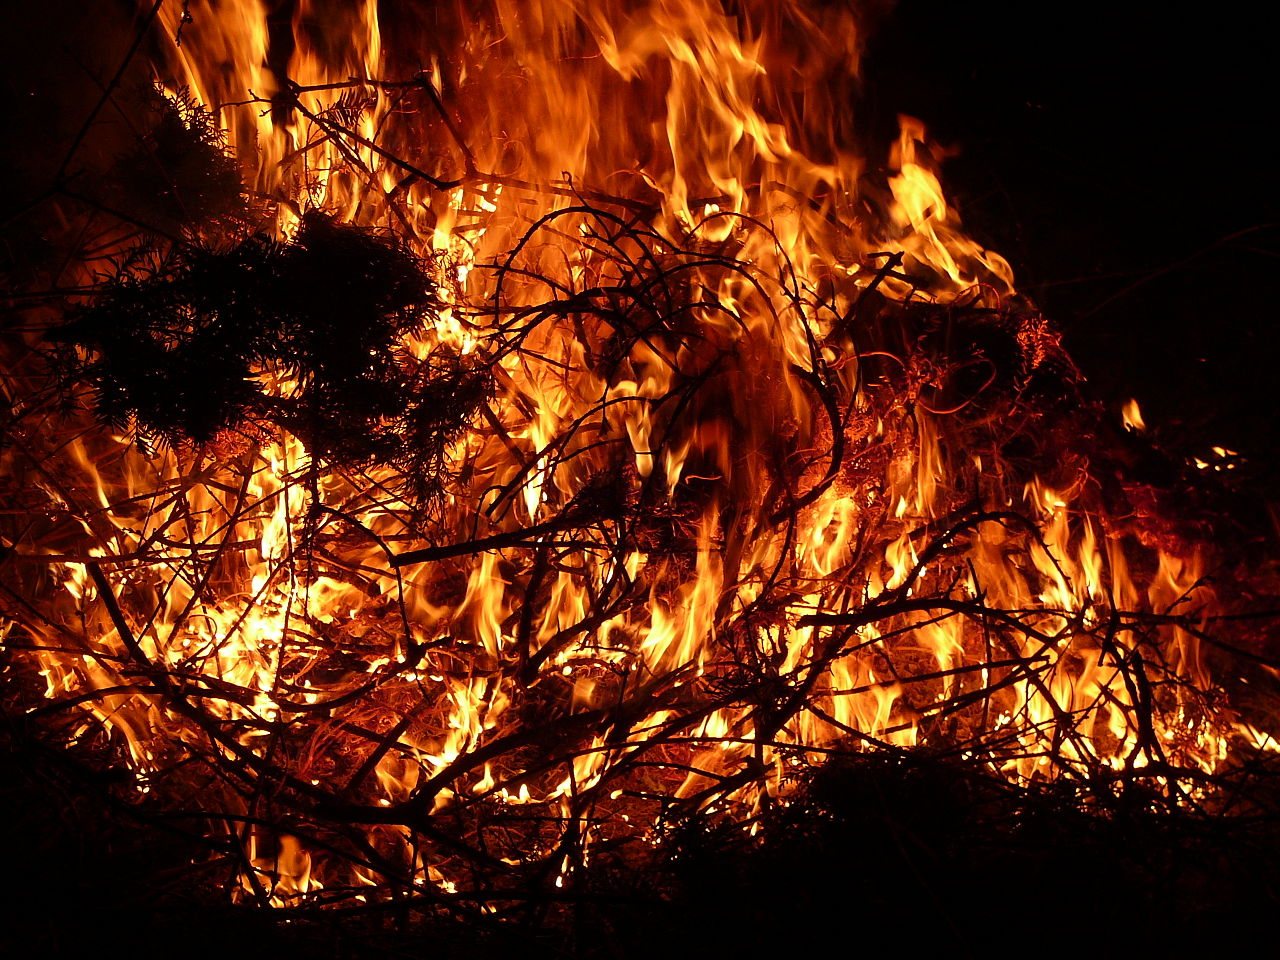 Kamloops Fire Centre burn ban to take effect Tuesday